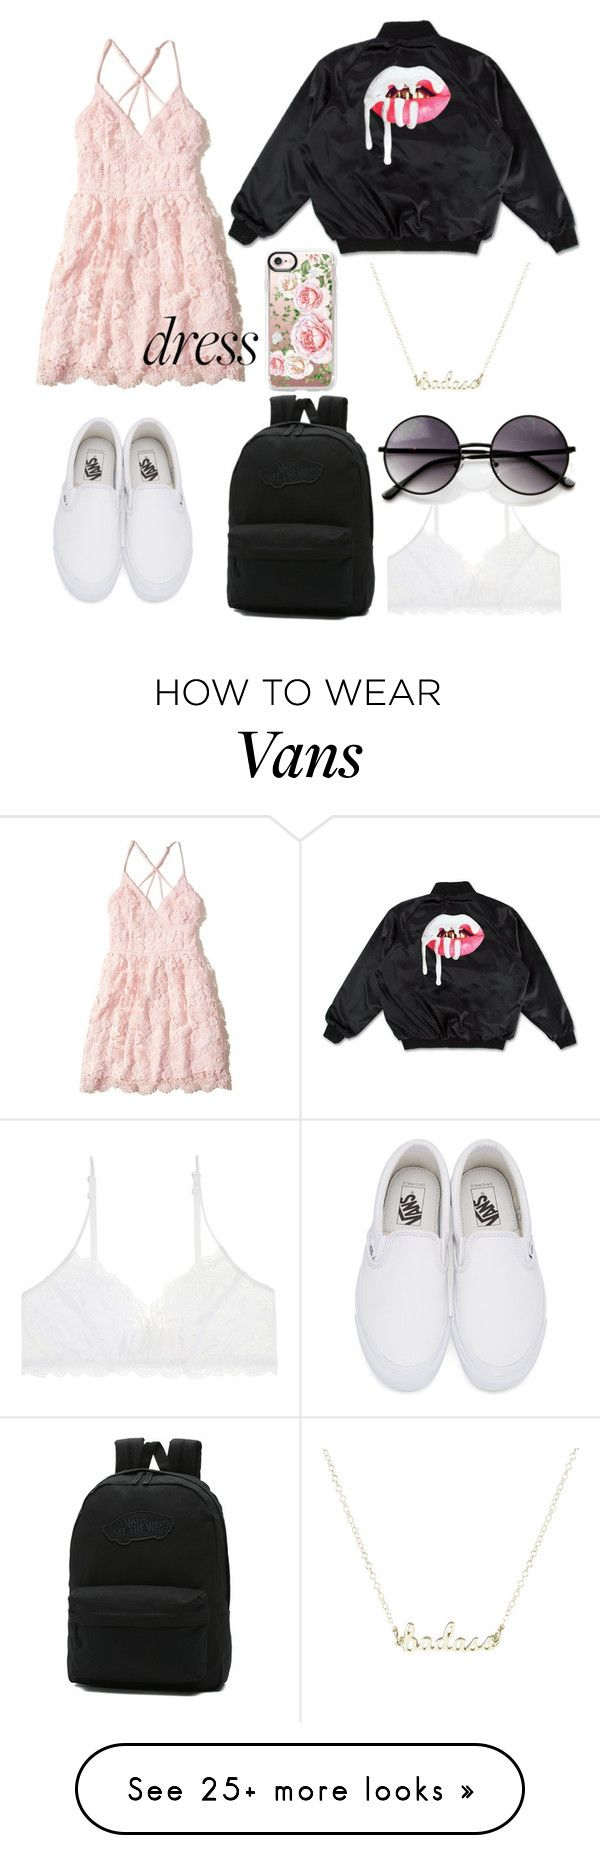 """lacey vans"" by sattadauda on Polyvore featuring Hollister Co., Vans, Casetify and ZeroUV"